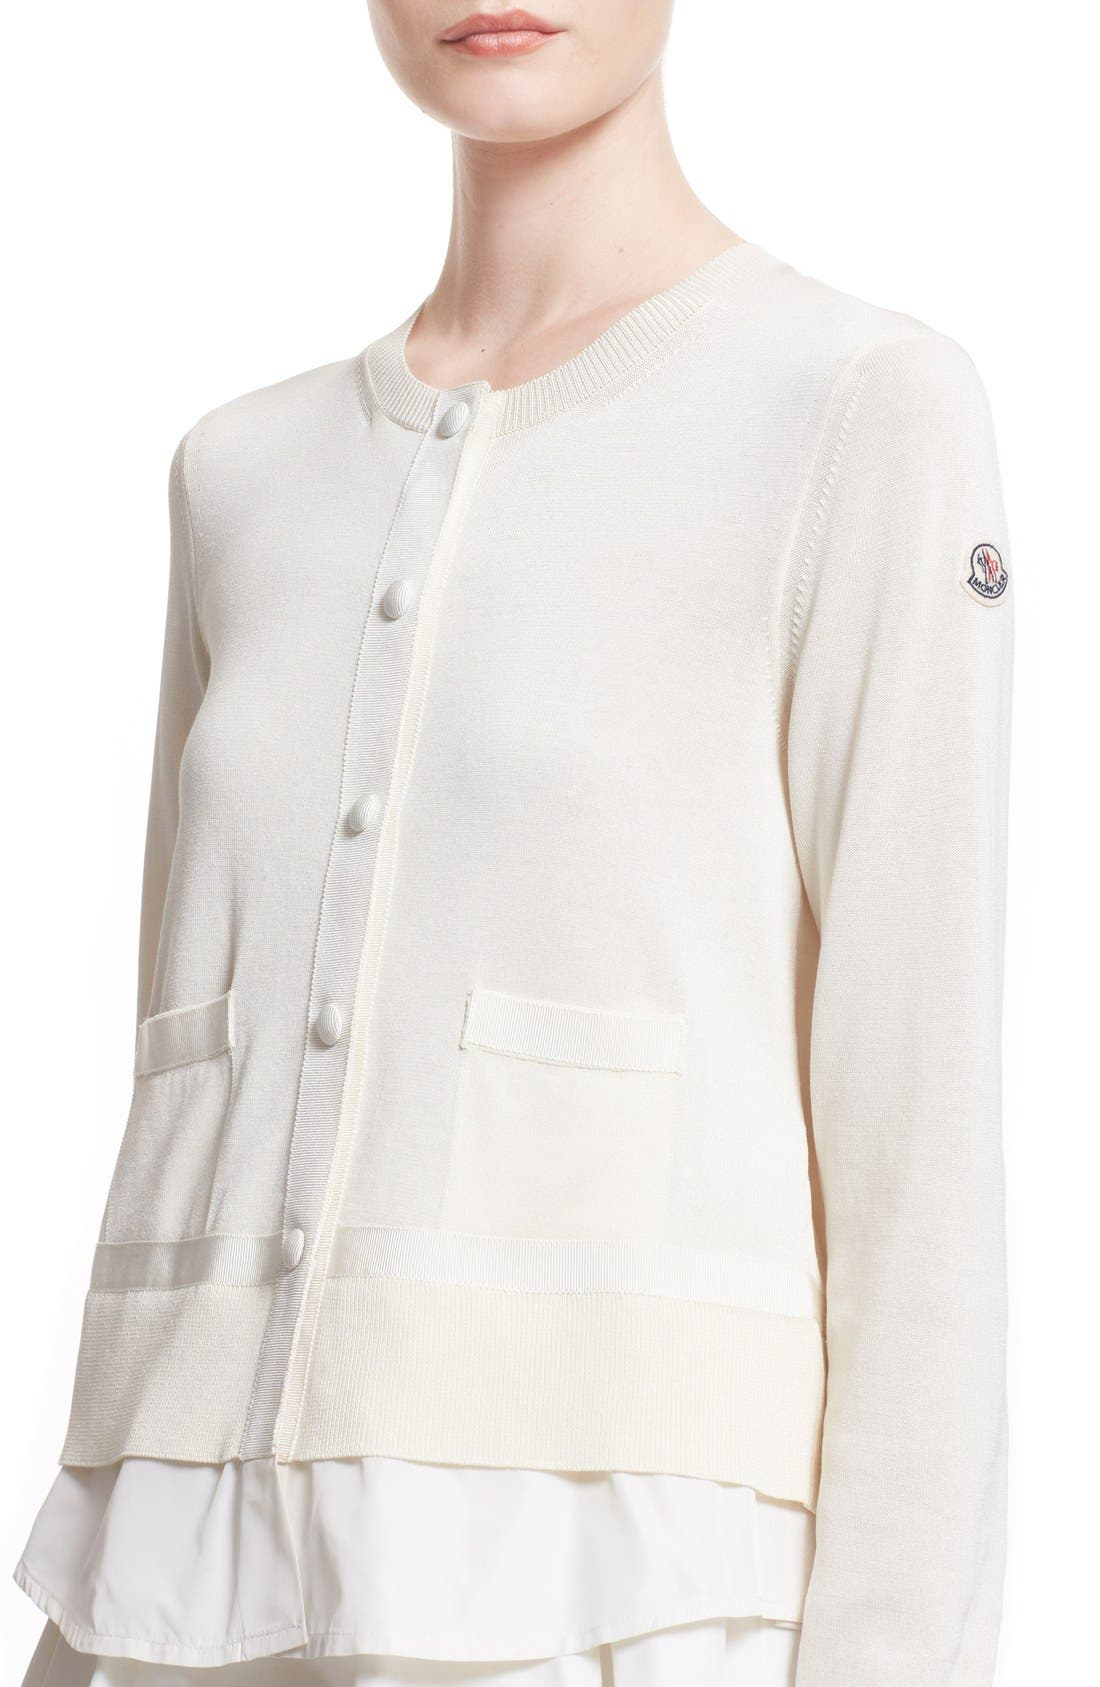 'Maglia' Tricot Button Cardigan,                             Alternate thumbnail 6, color,                             White